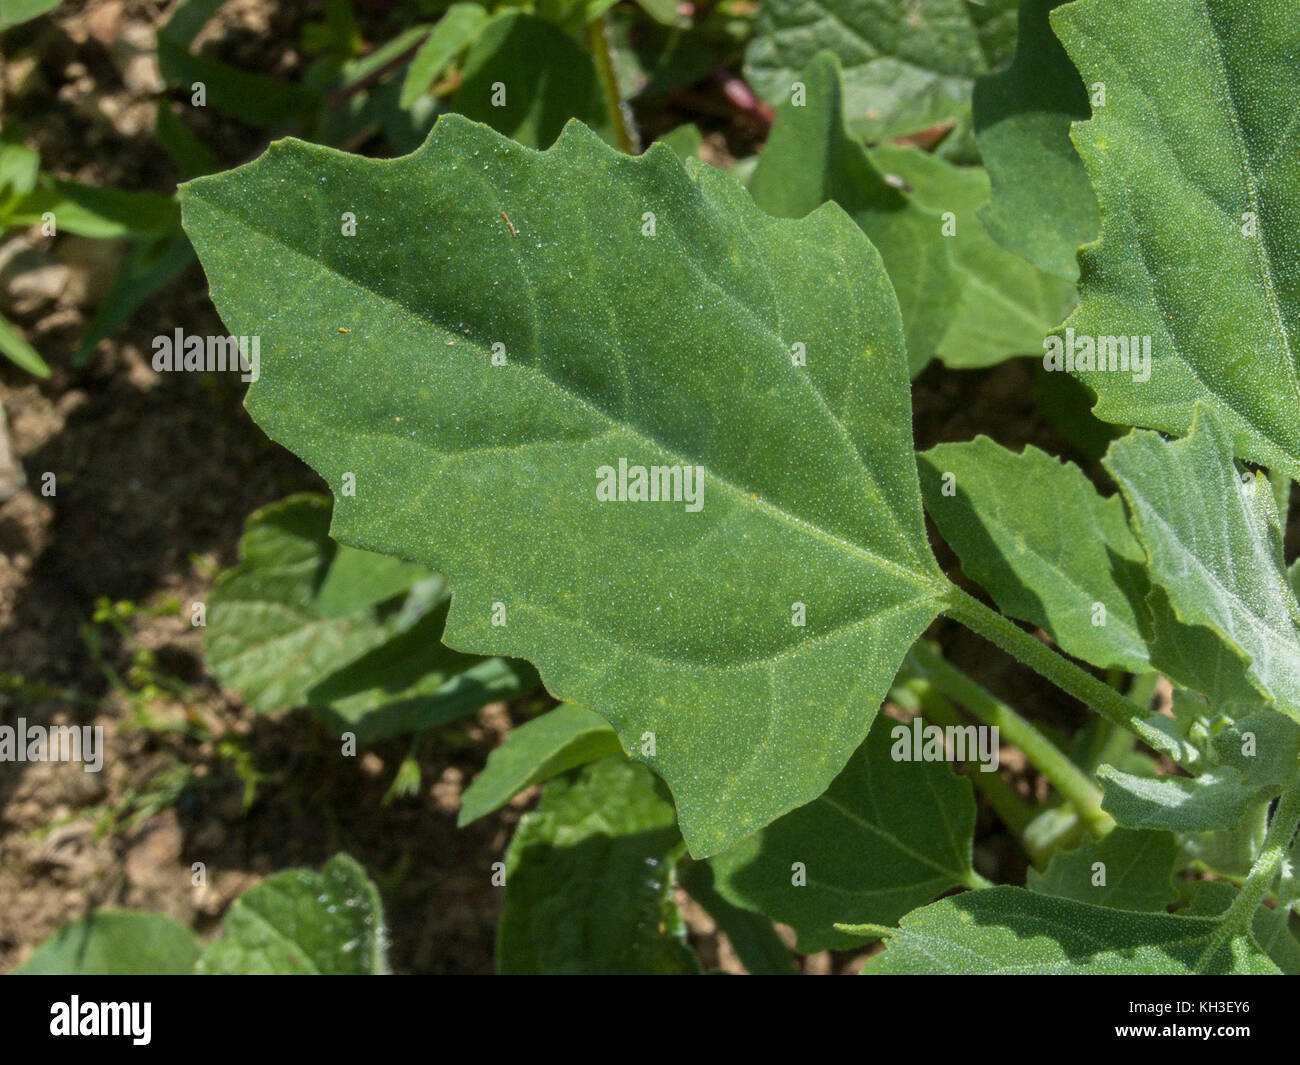 Foliage of Fat-Het (Chenopodium album) - an agricultural weed that is edible and was once regularly used as food. - Stock Image